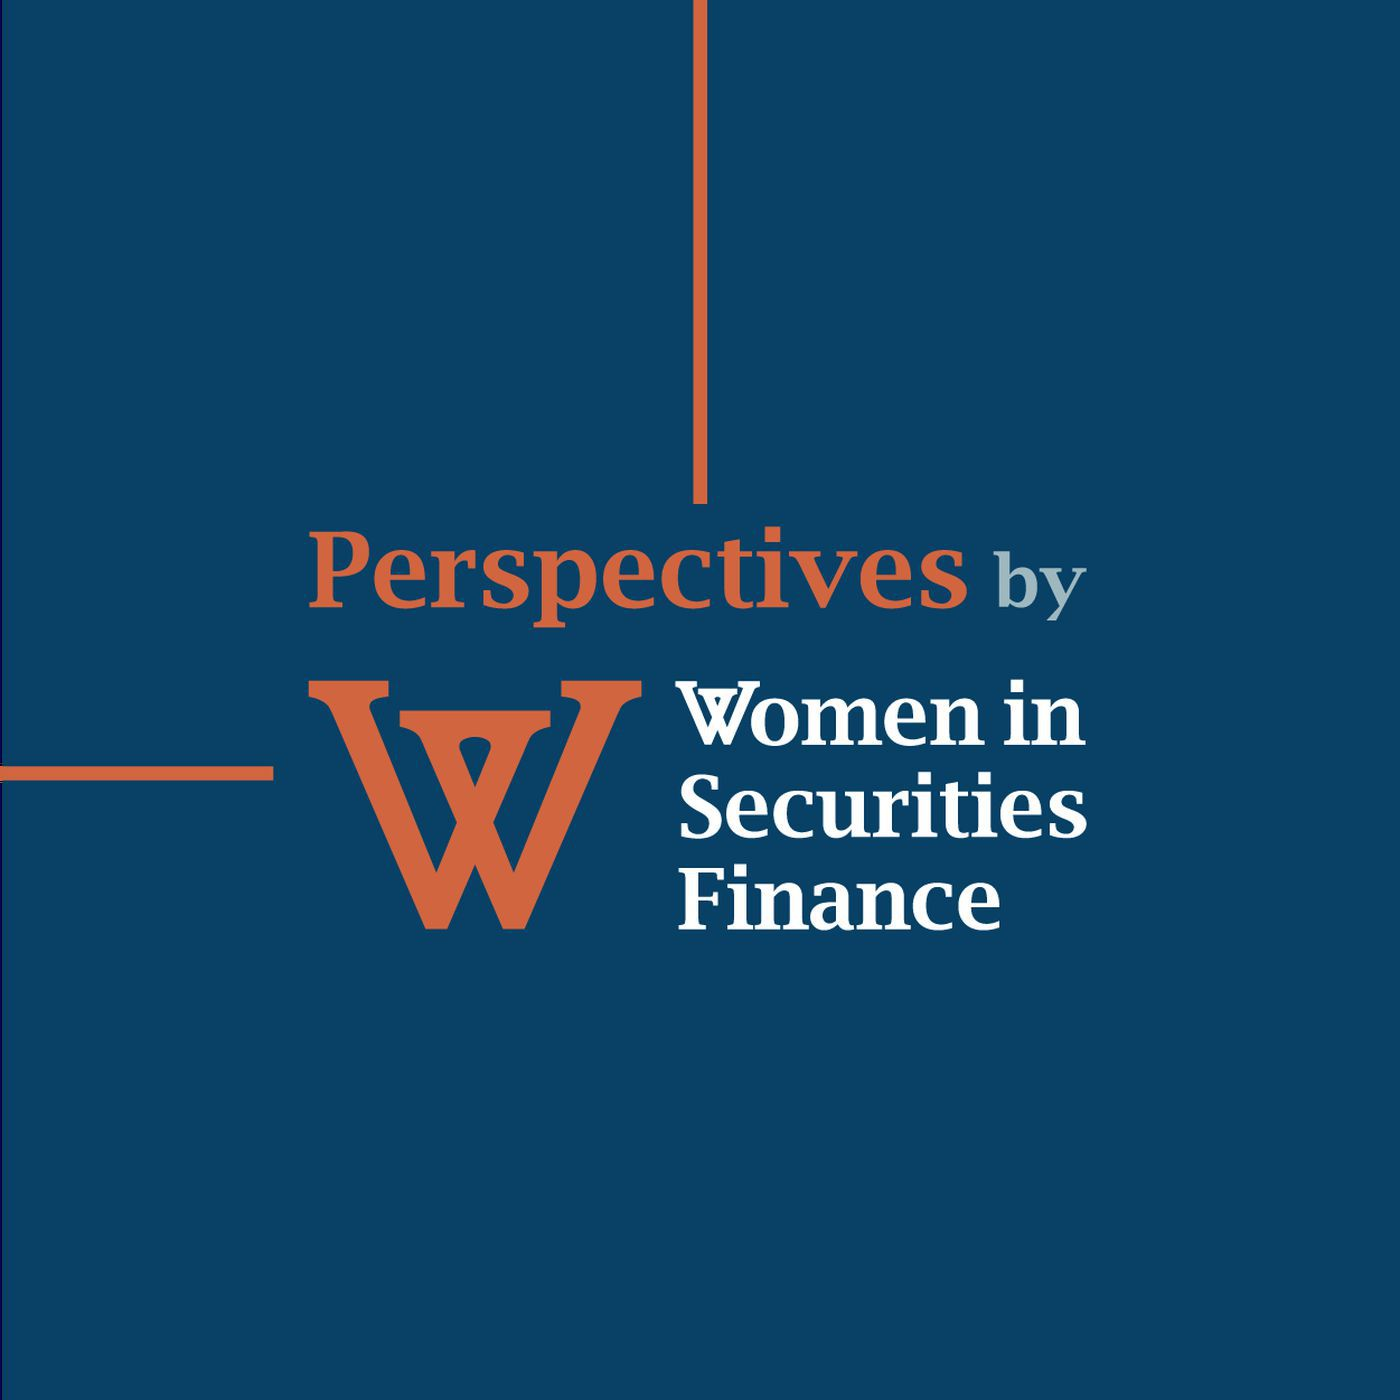 Perspectives by Women in Securities Finance